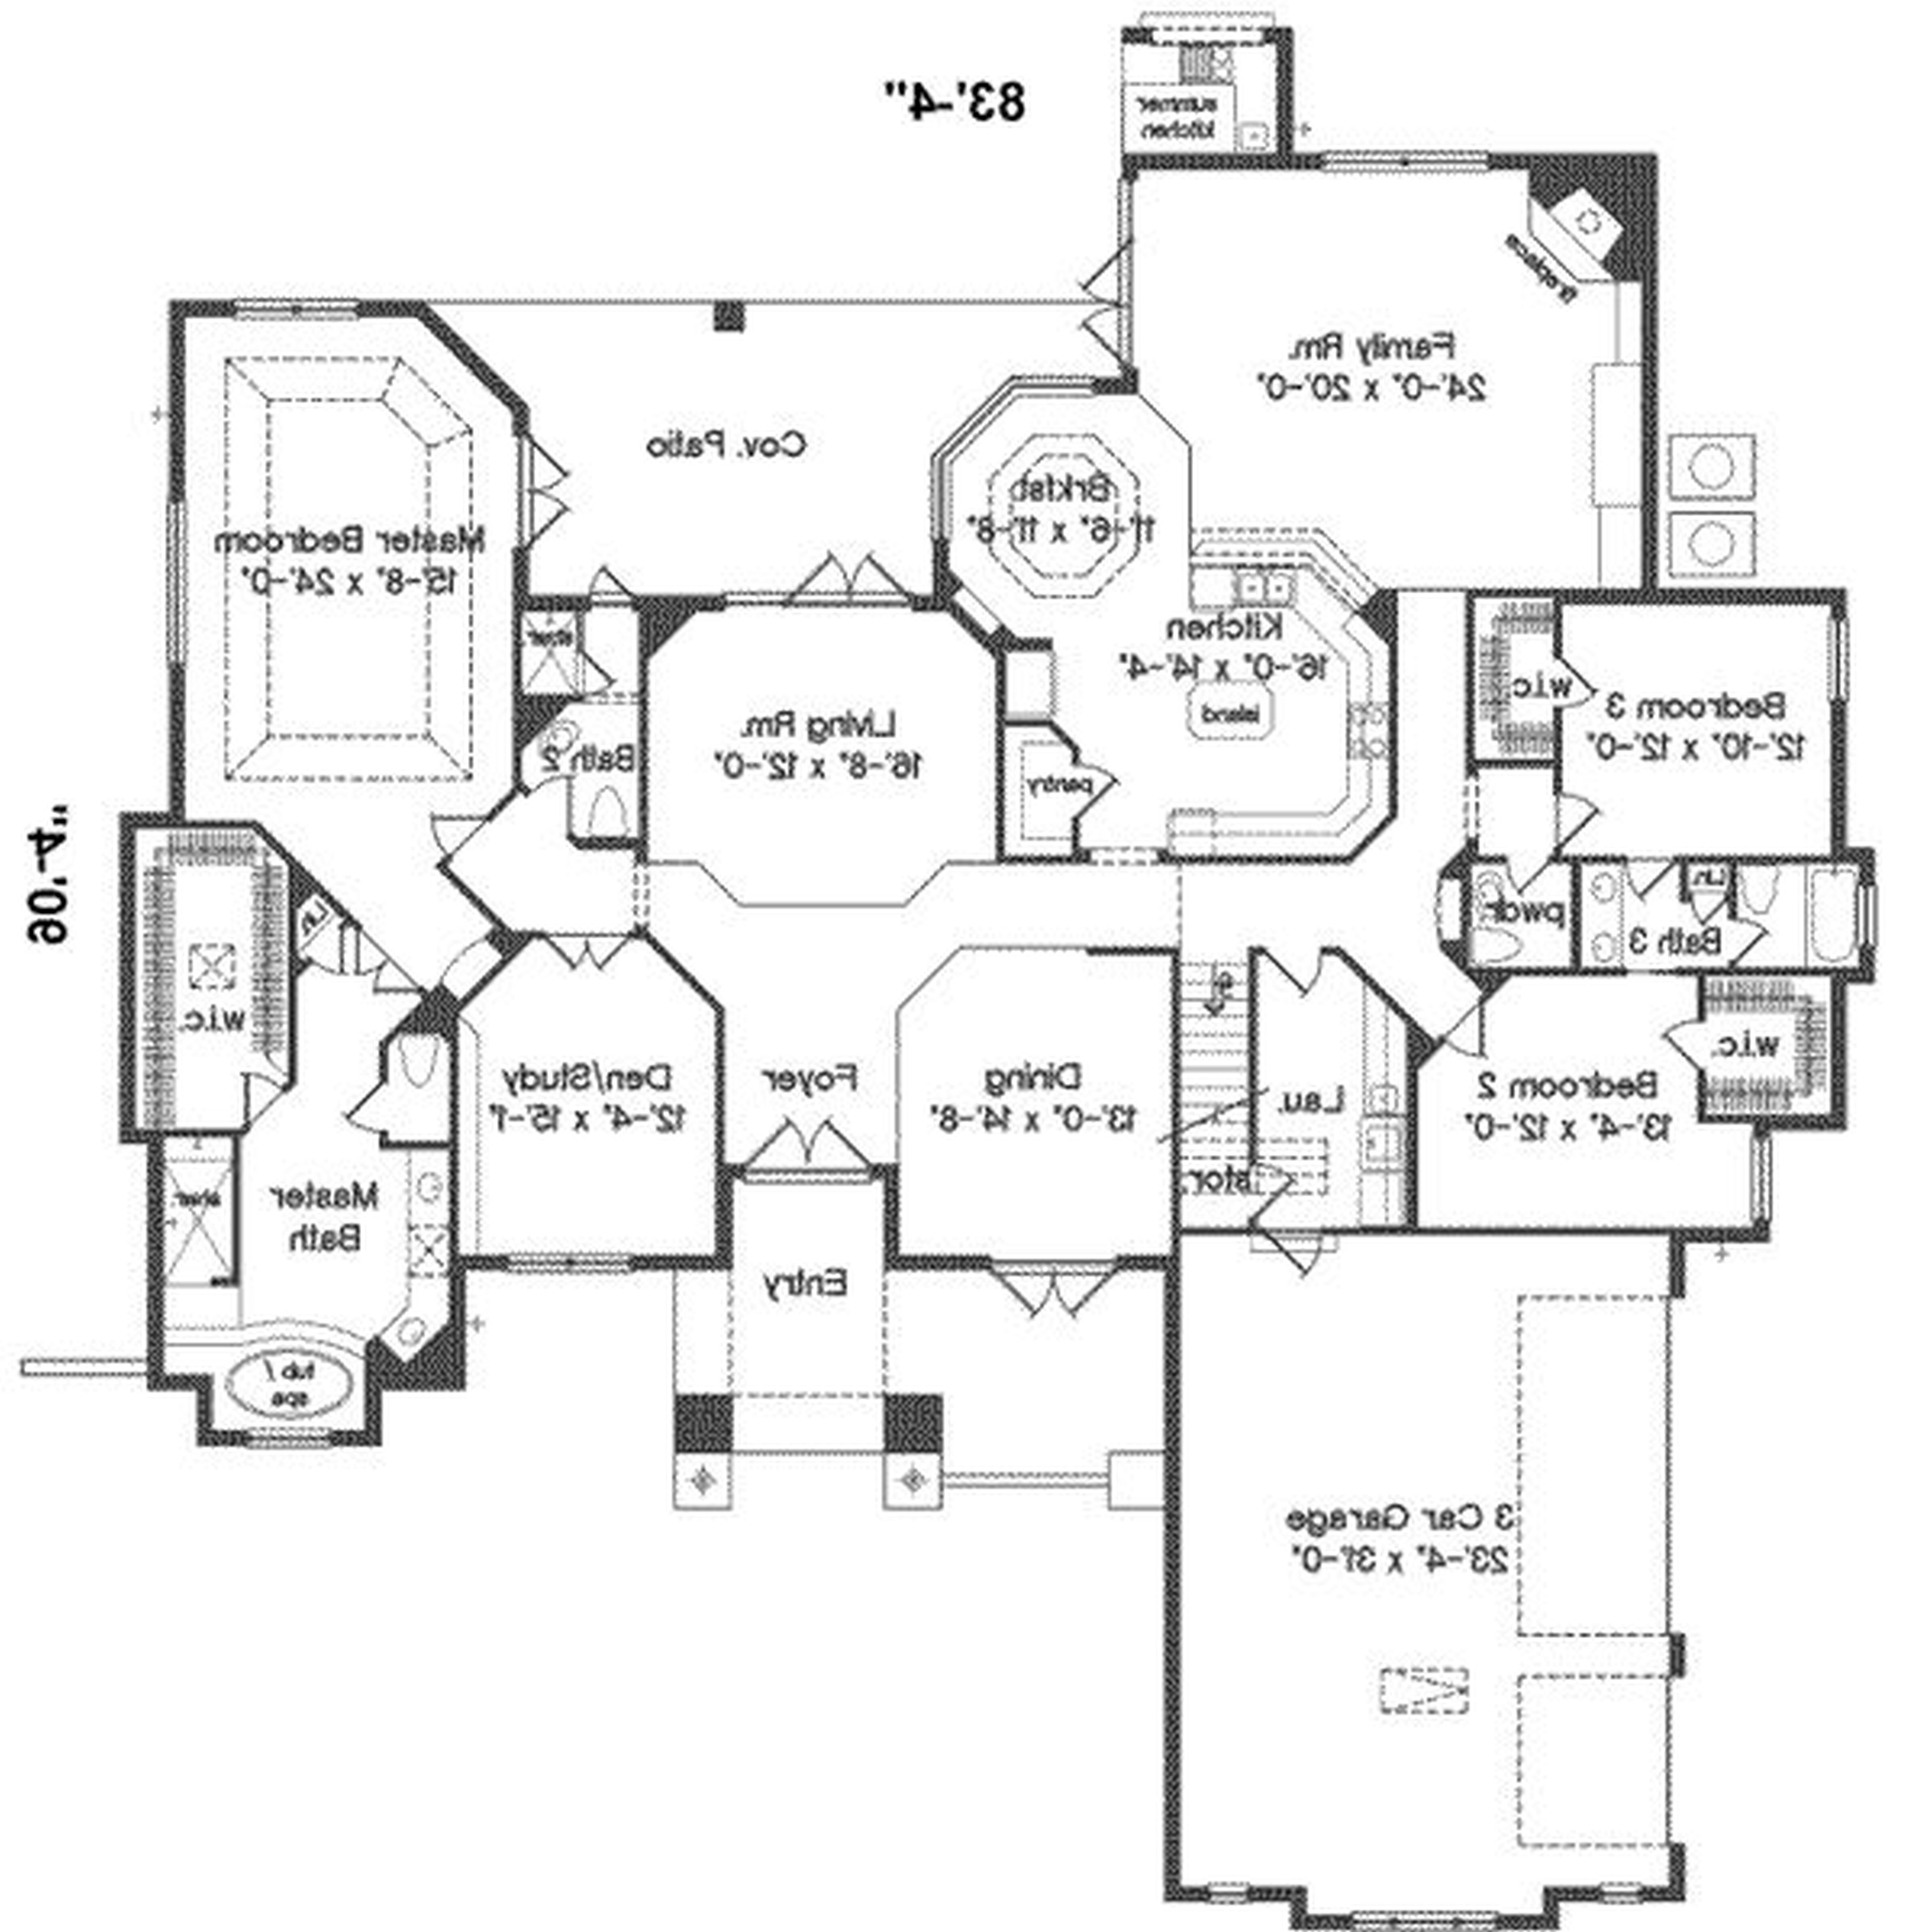 Office building drawing at getdrawings free for personal use diy home wiring diagram